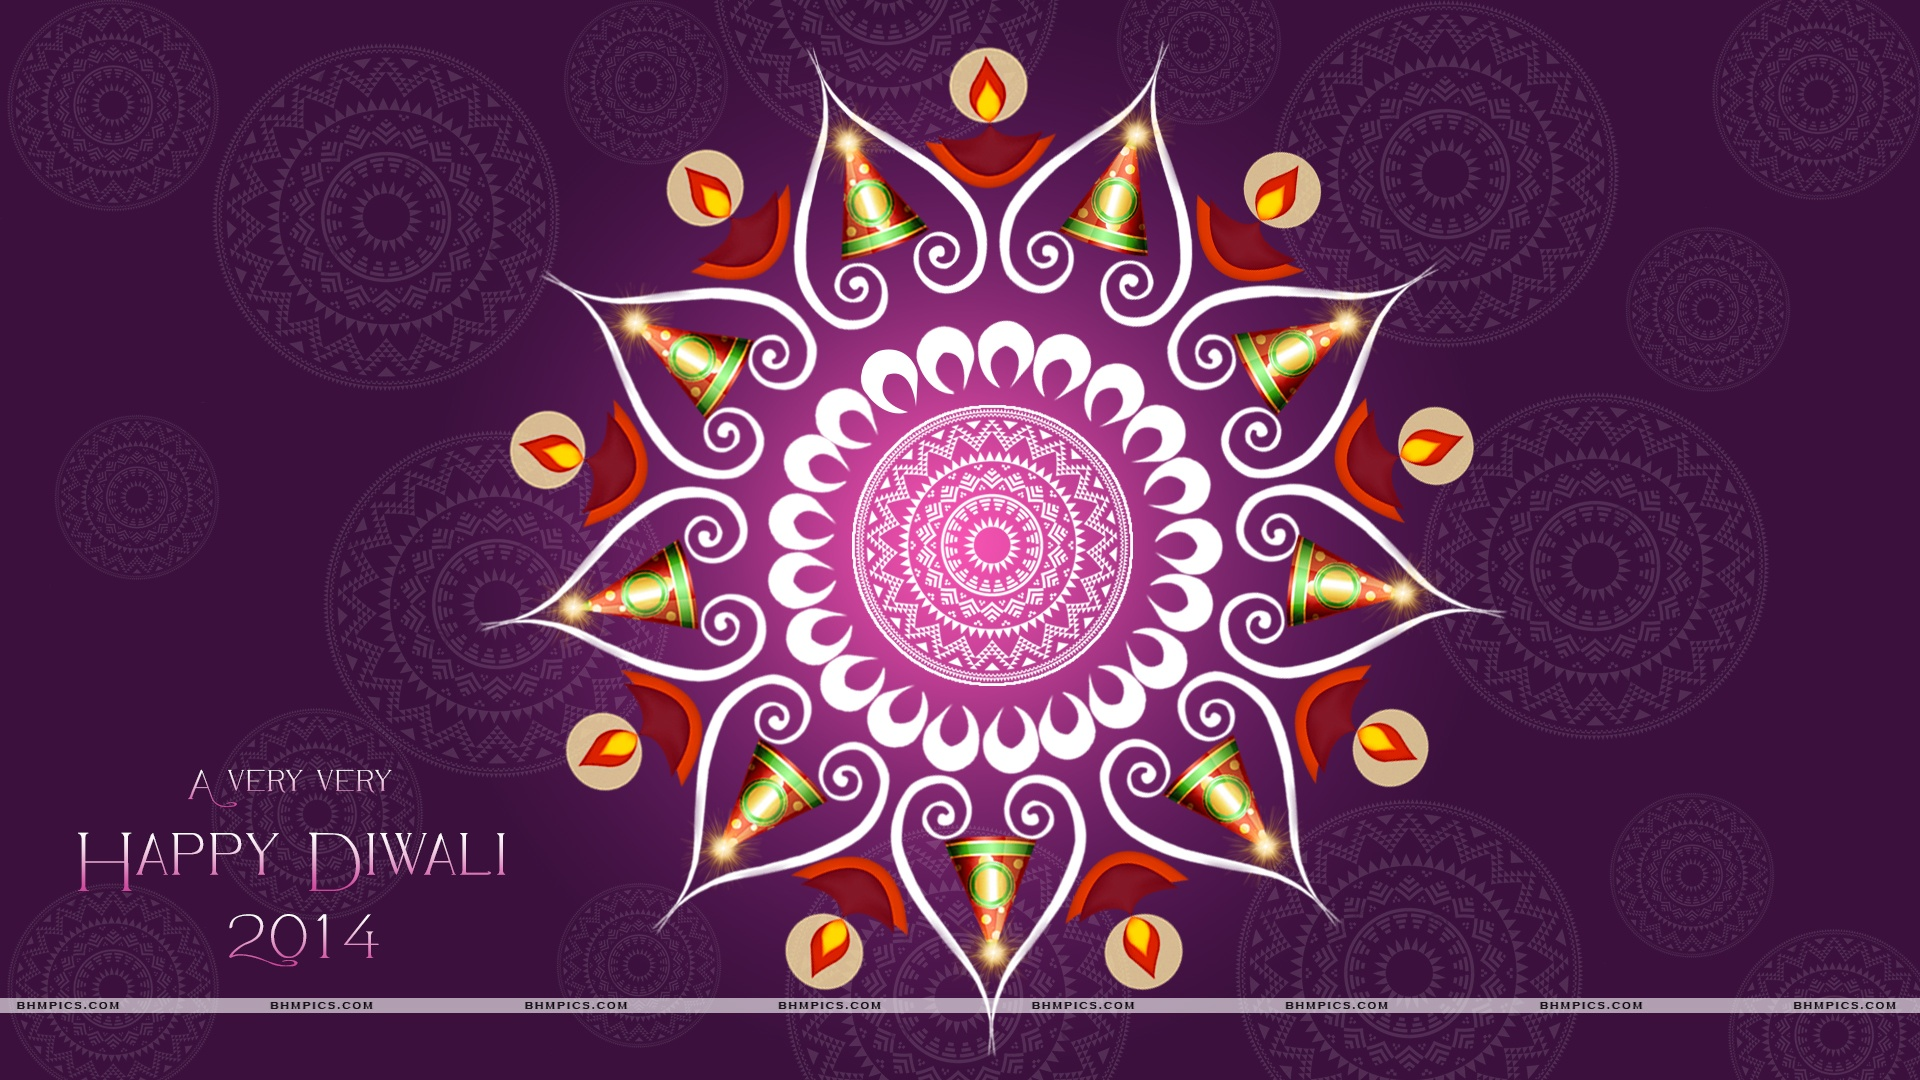 rangoli designs wallpaper stars - photo #17